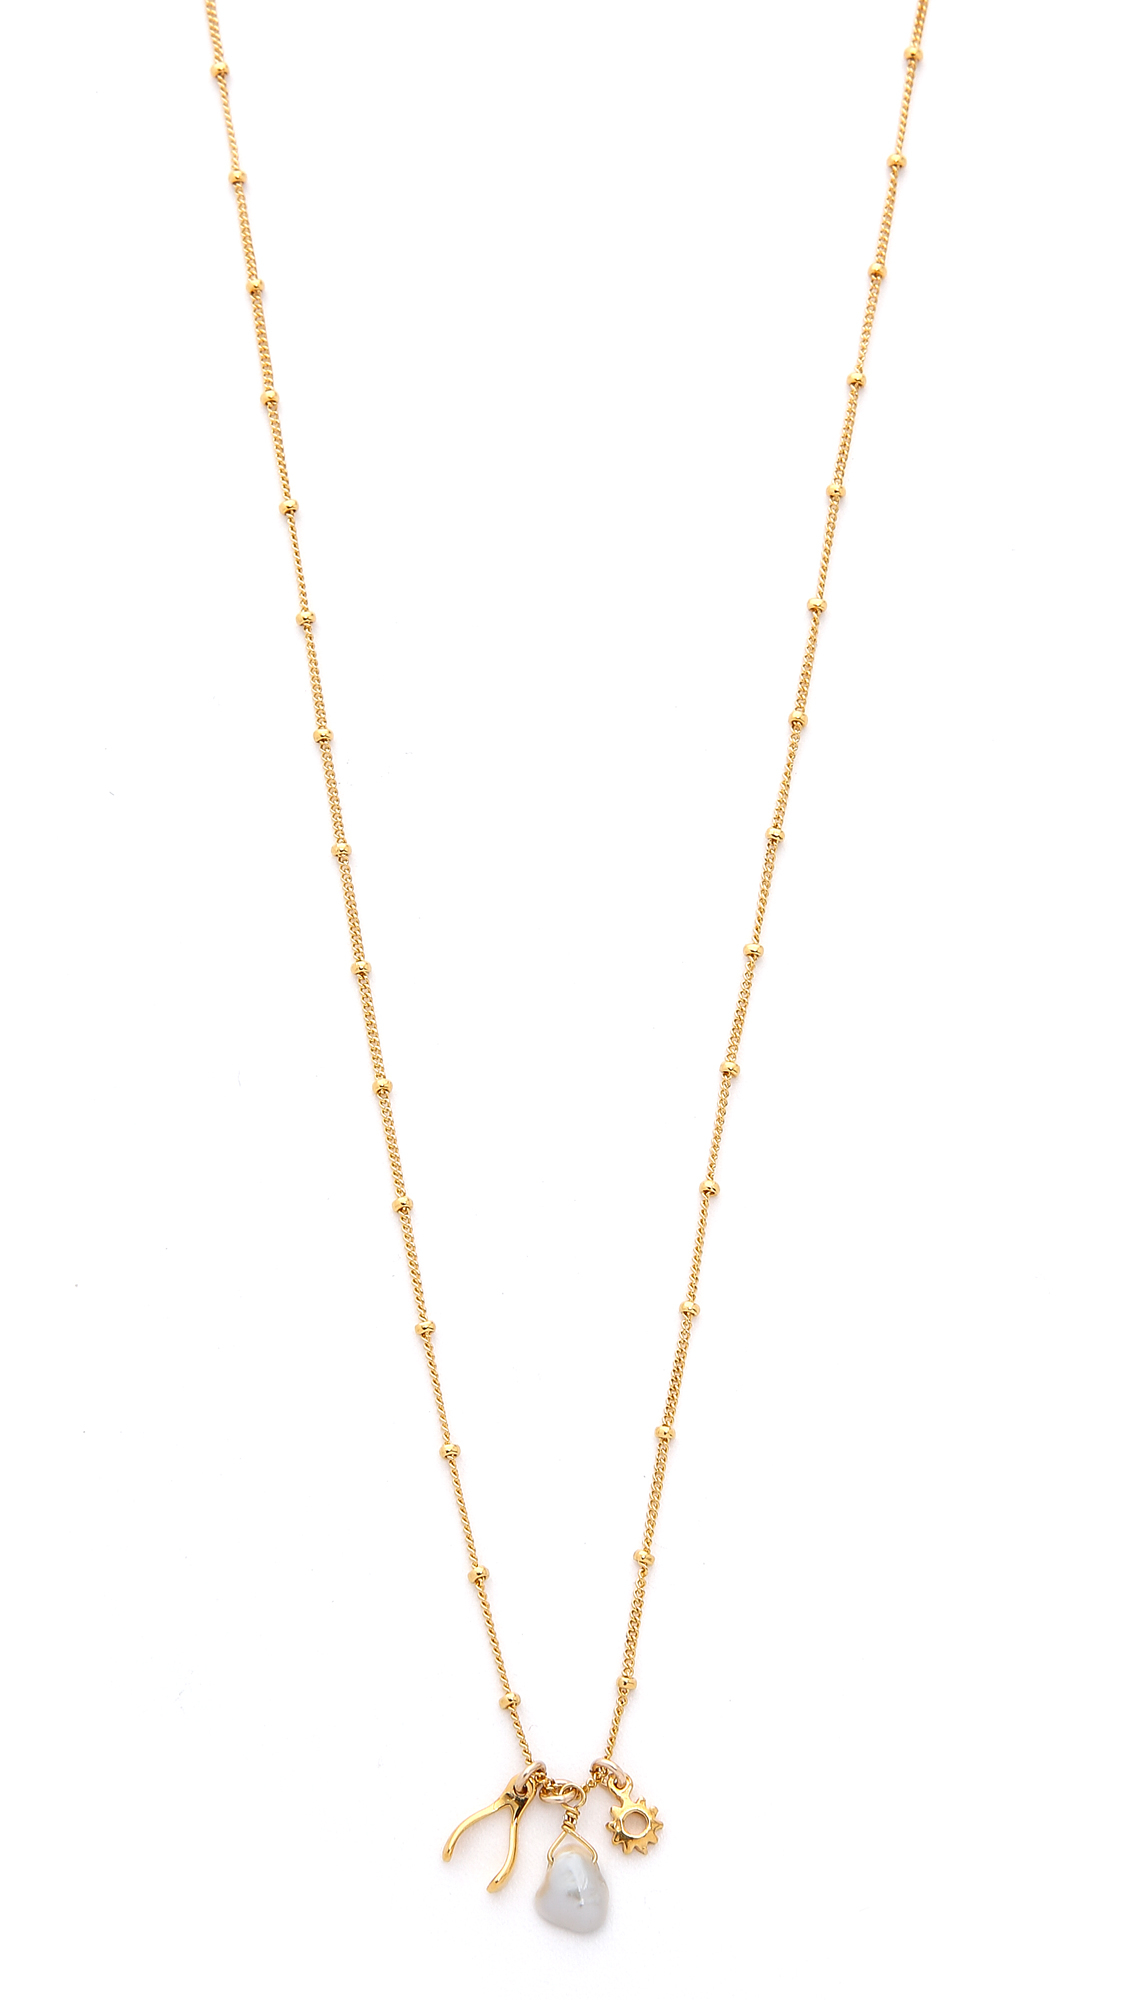 Lyst Chan Luu Cultured Freshwater Pearl Charm Necklace